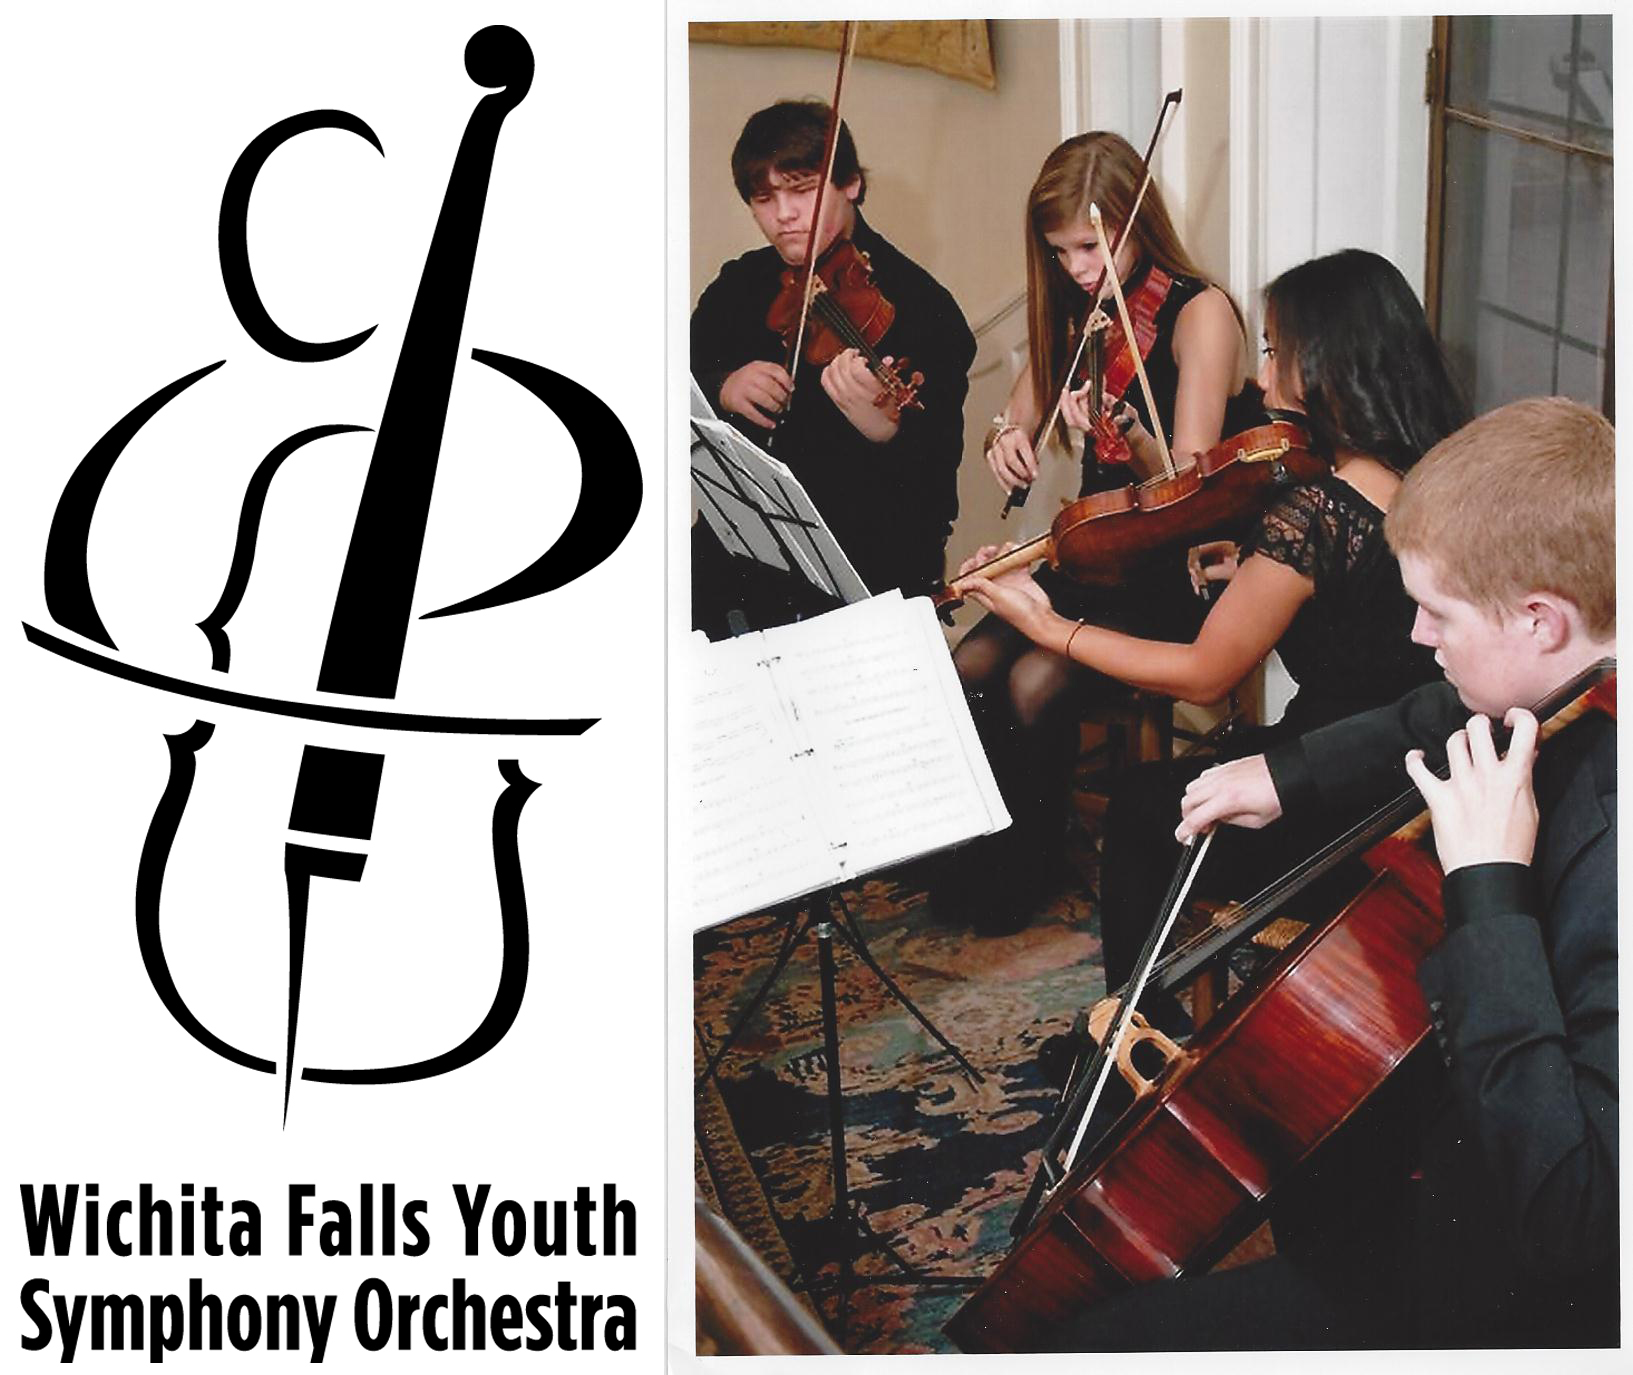 photo of string quartet of Wichita Falls Youth Symphony Orchestra